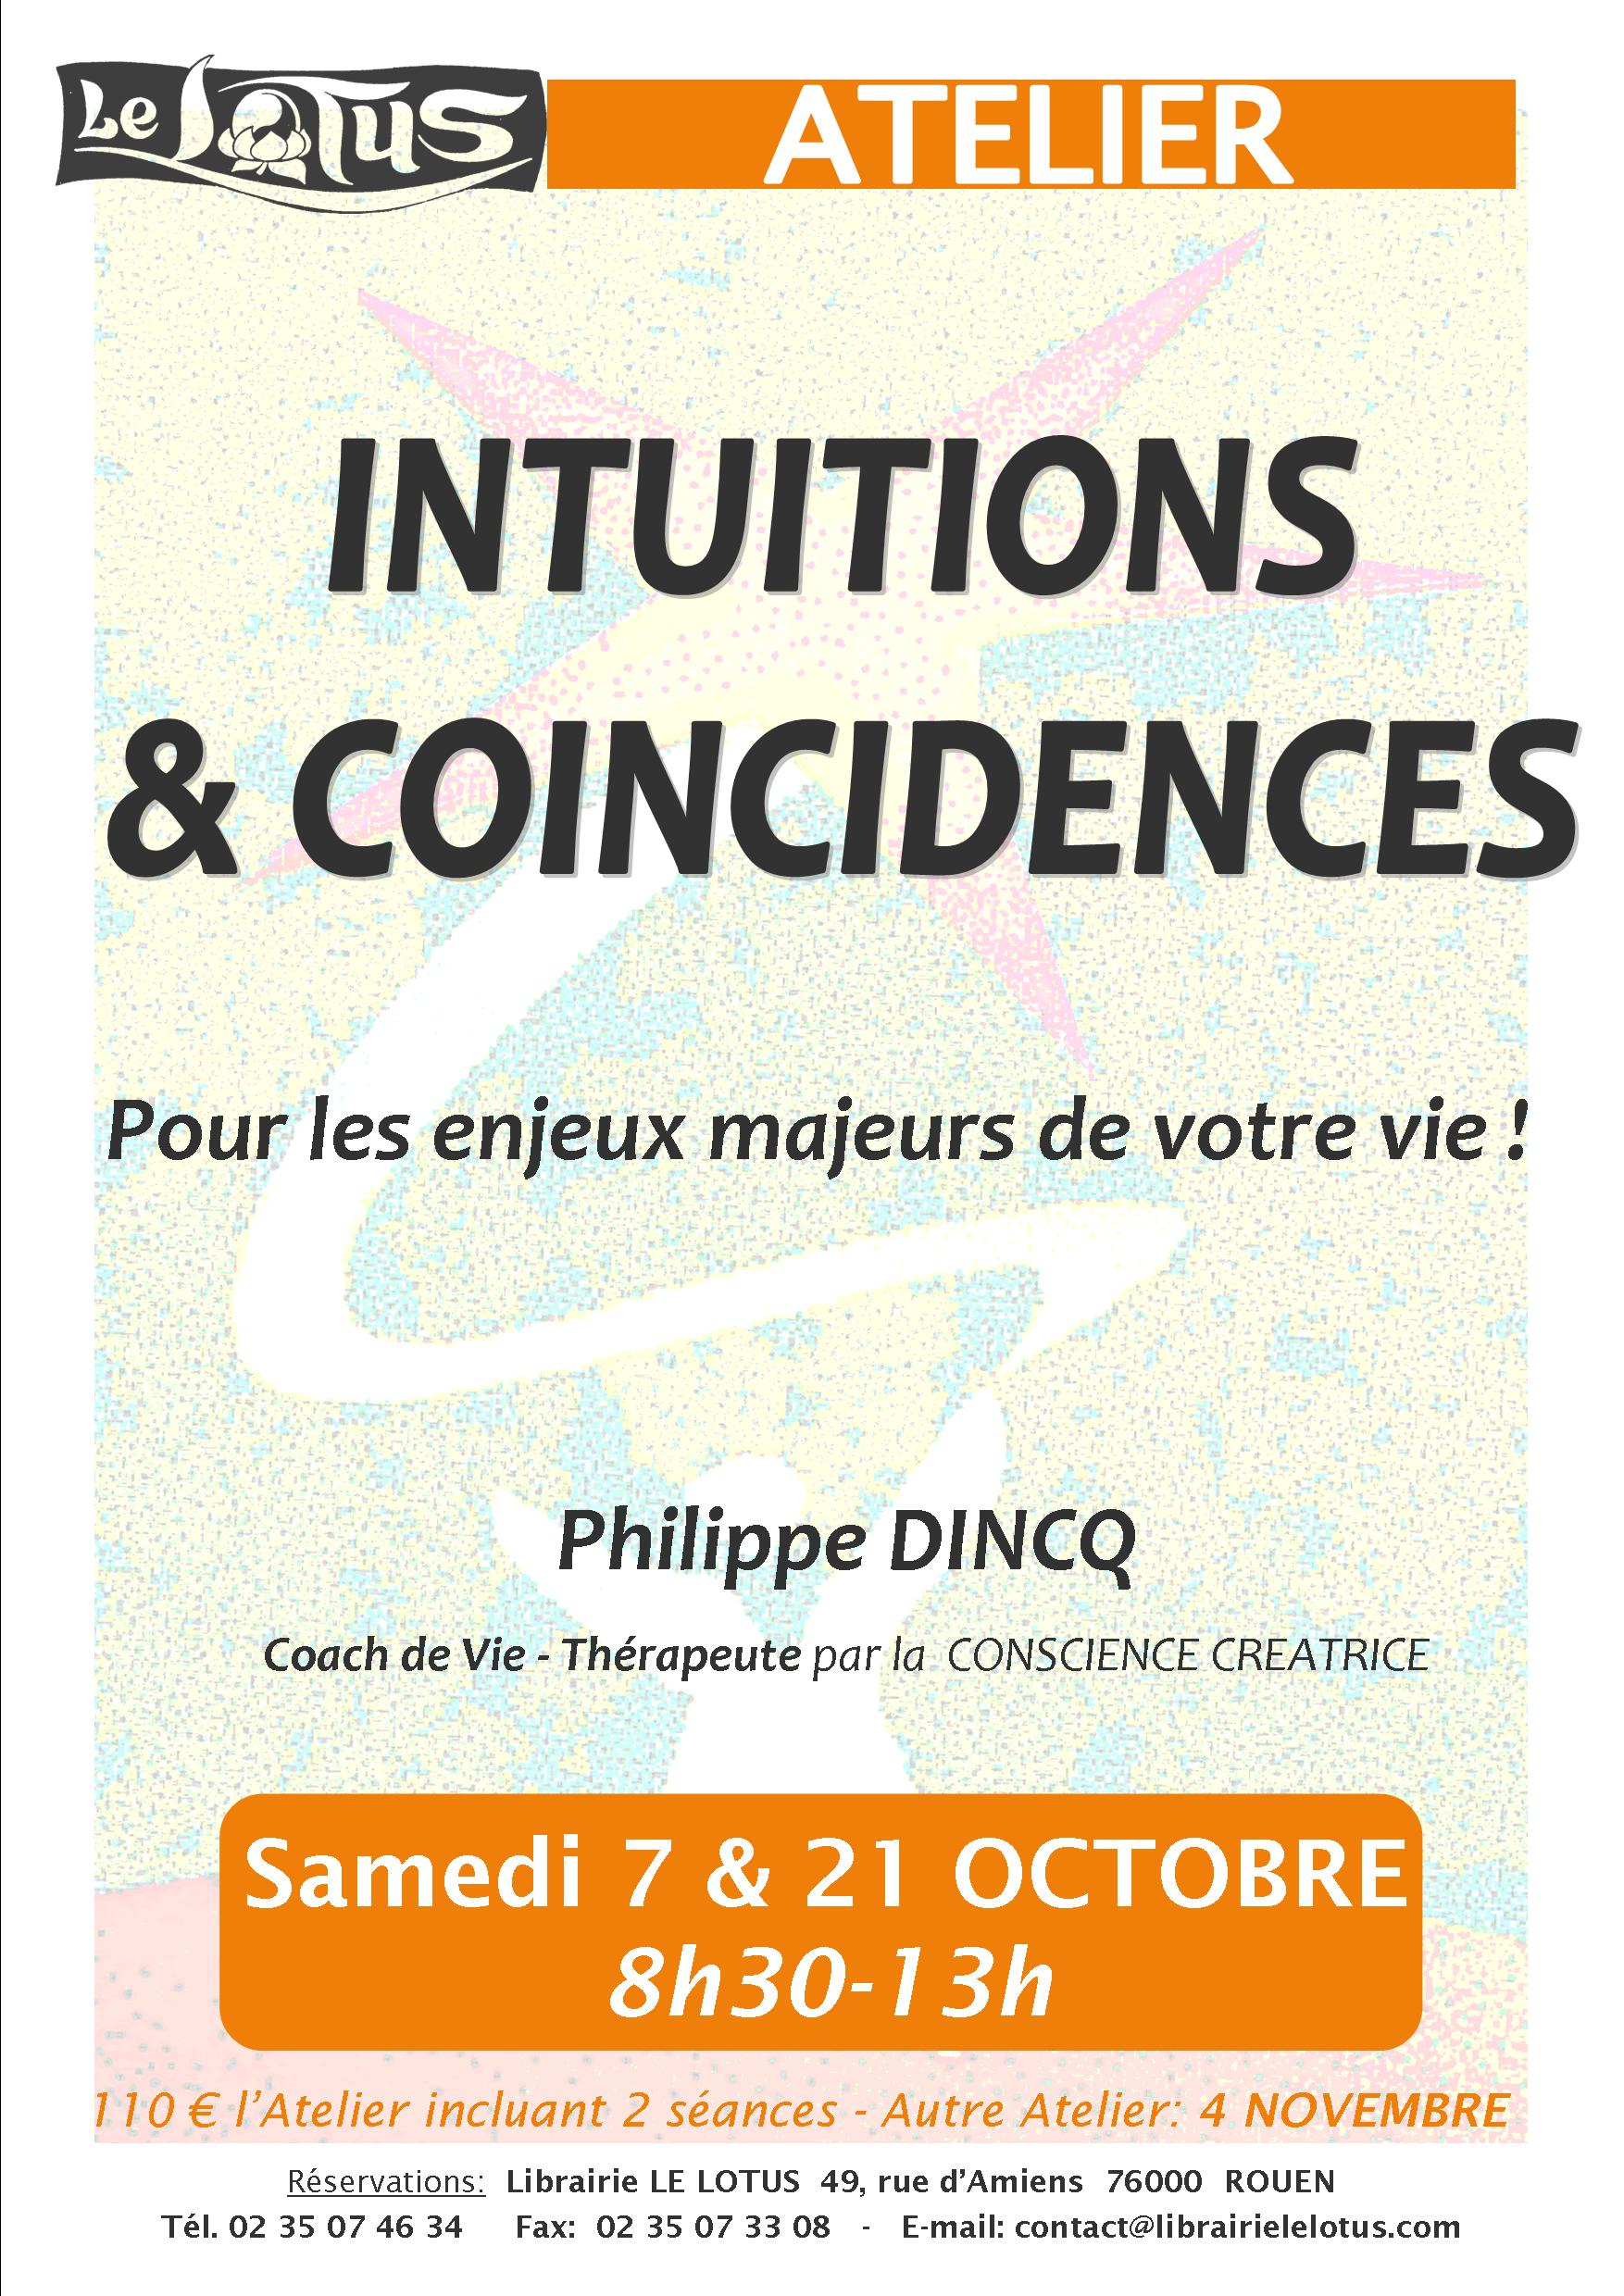 ATELIER - INTUITIONS & COINCIDENCES - OCTOBRE